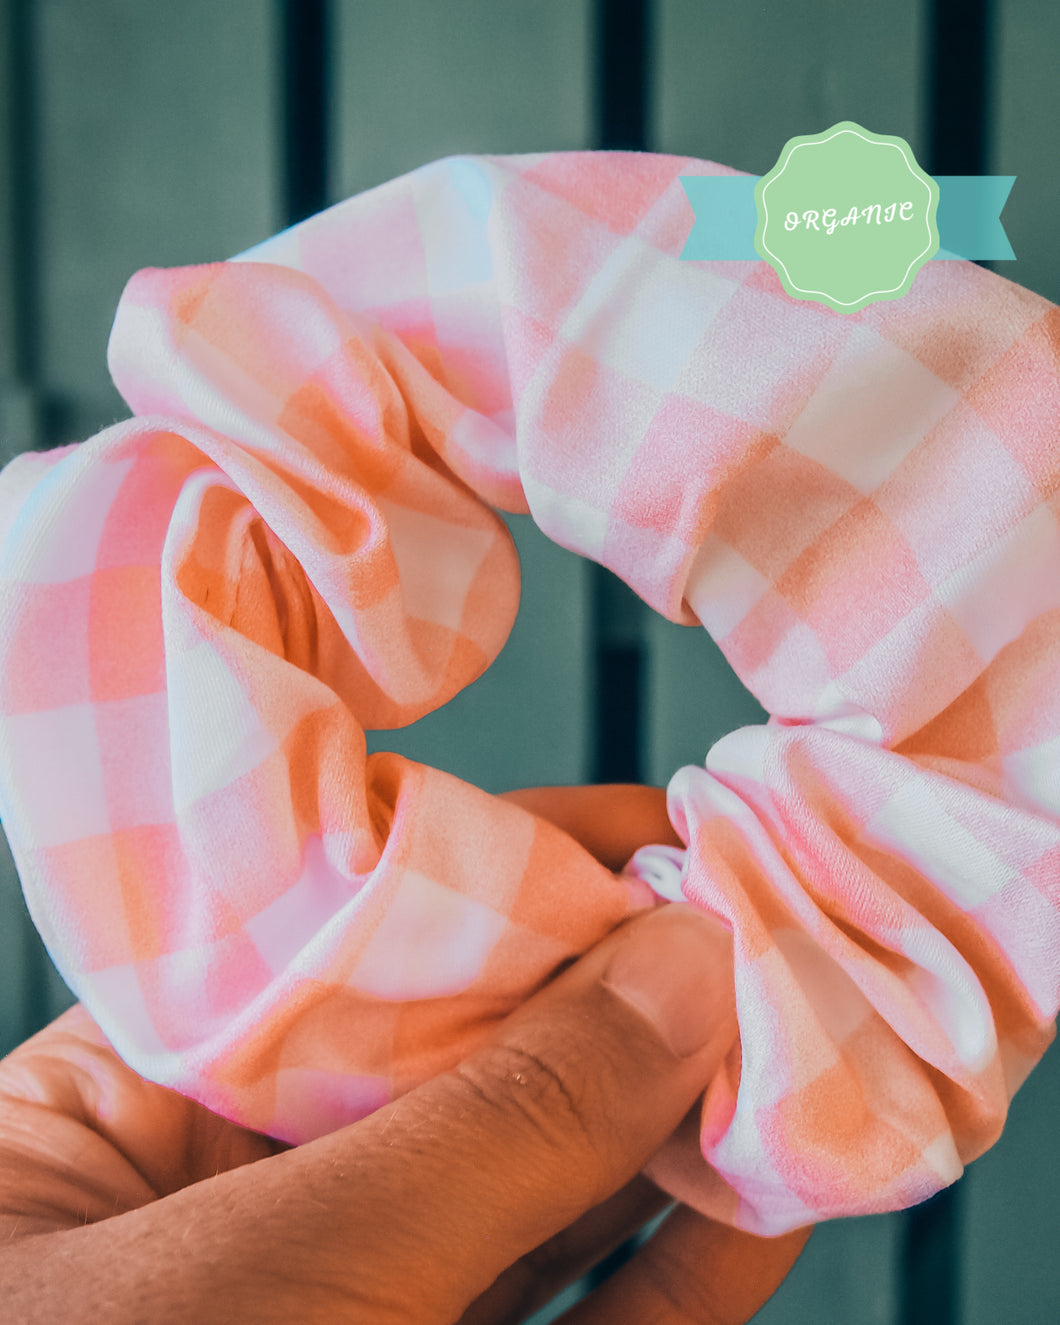 gingham luxe organic scrunchie - pink + white